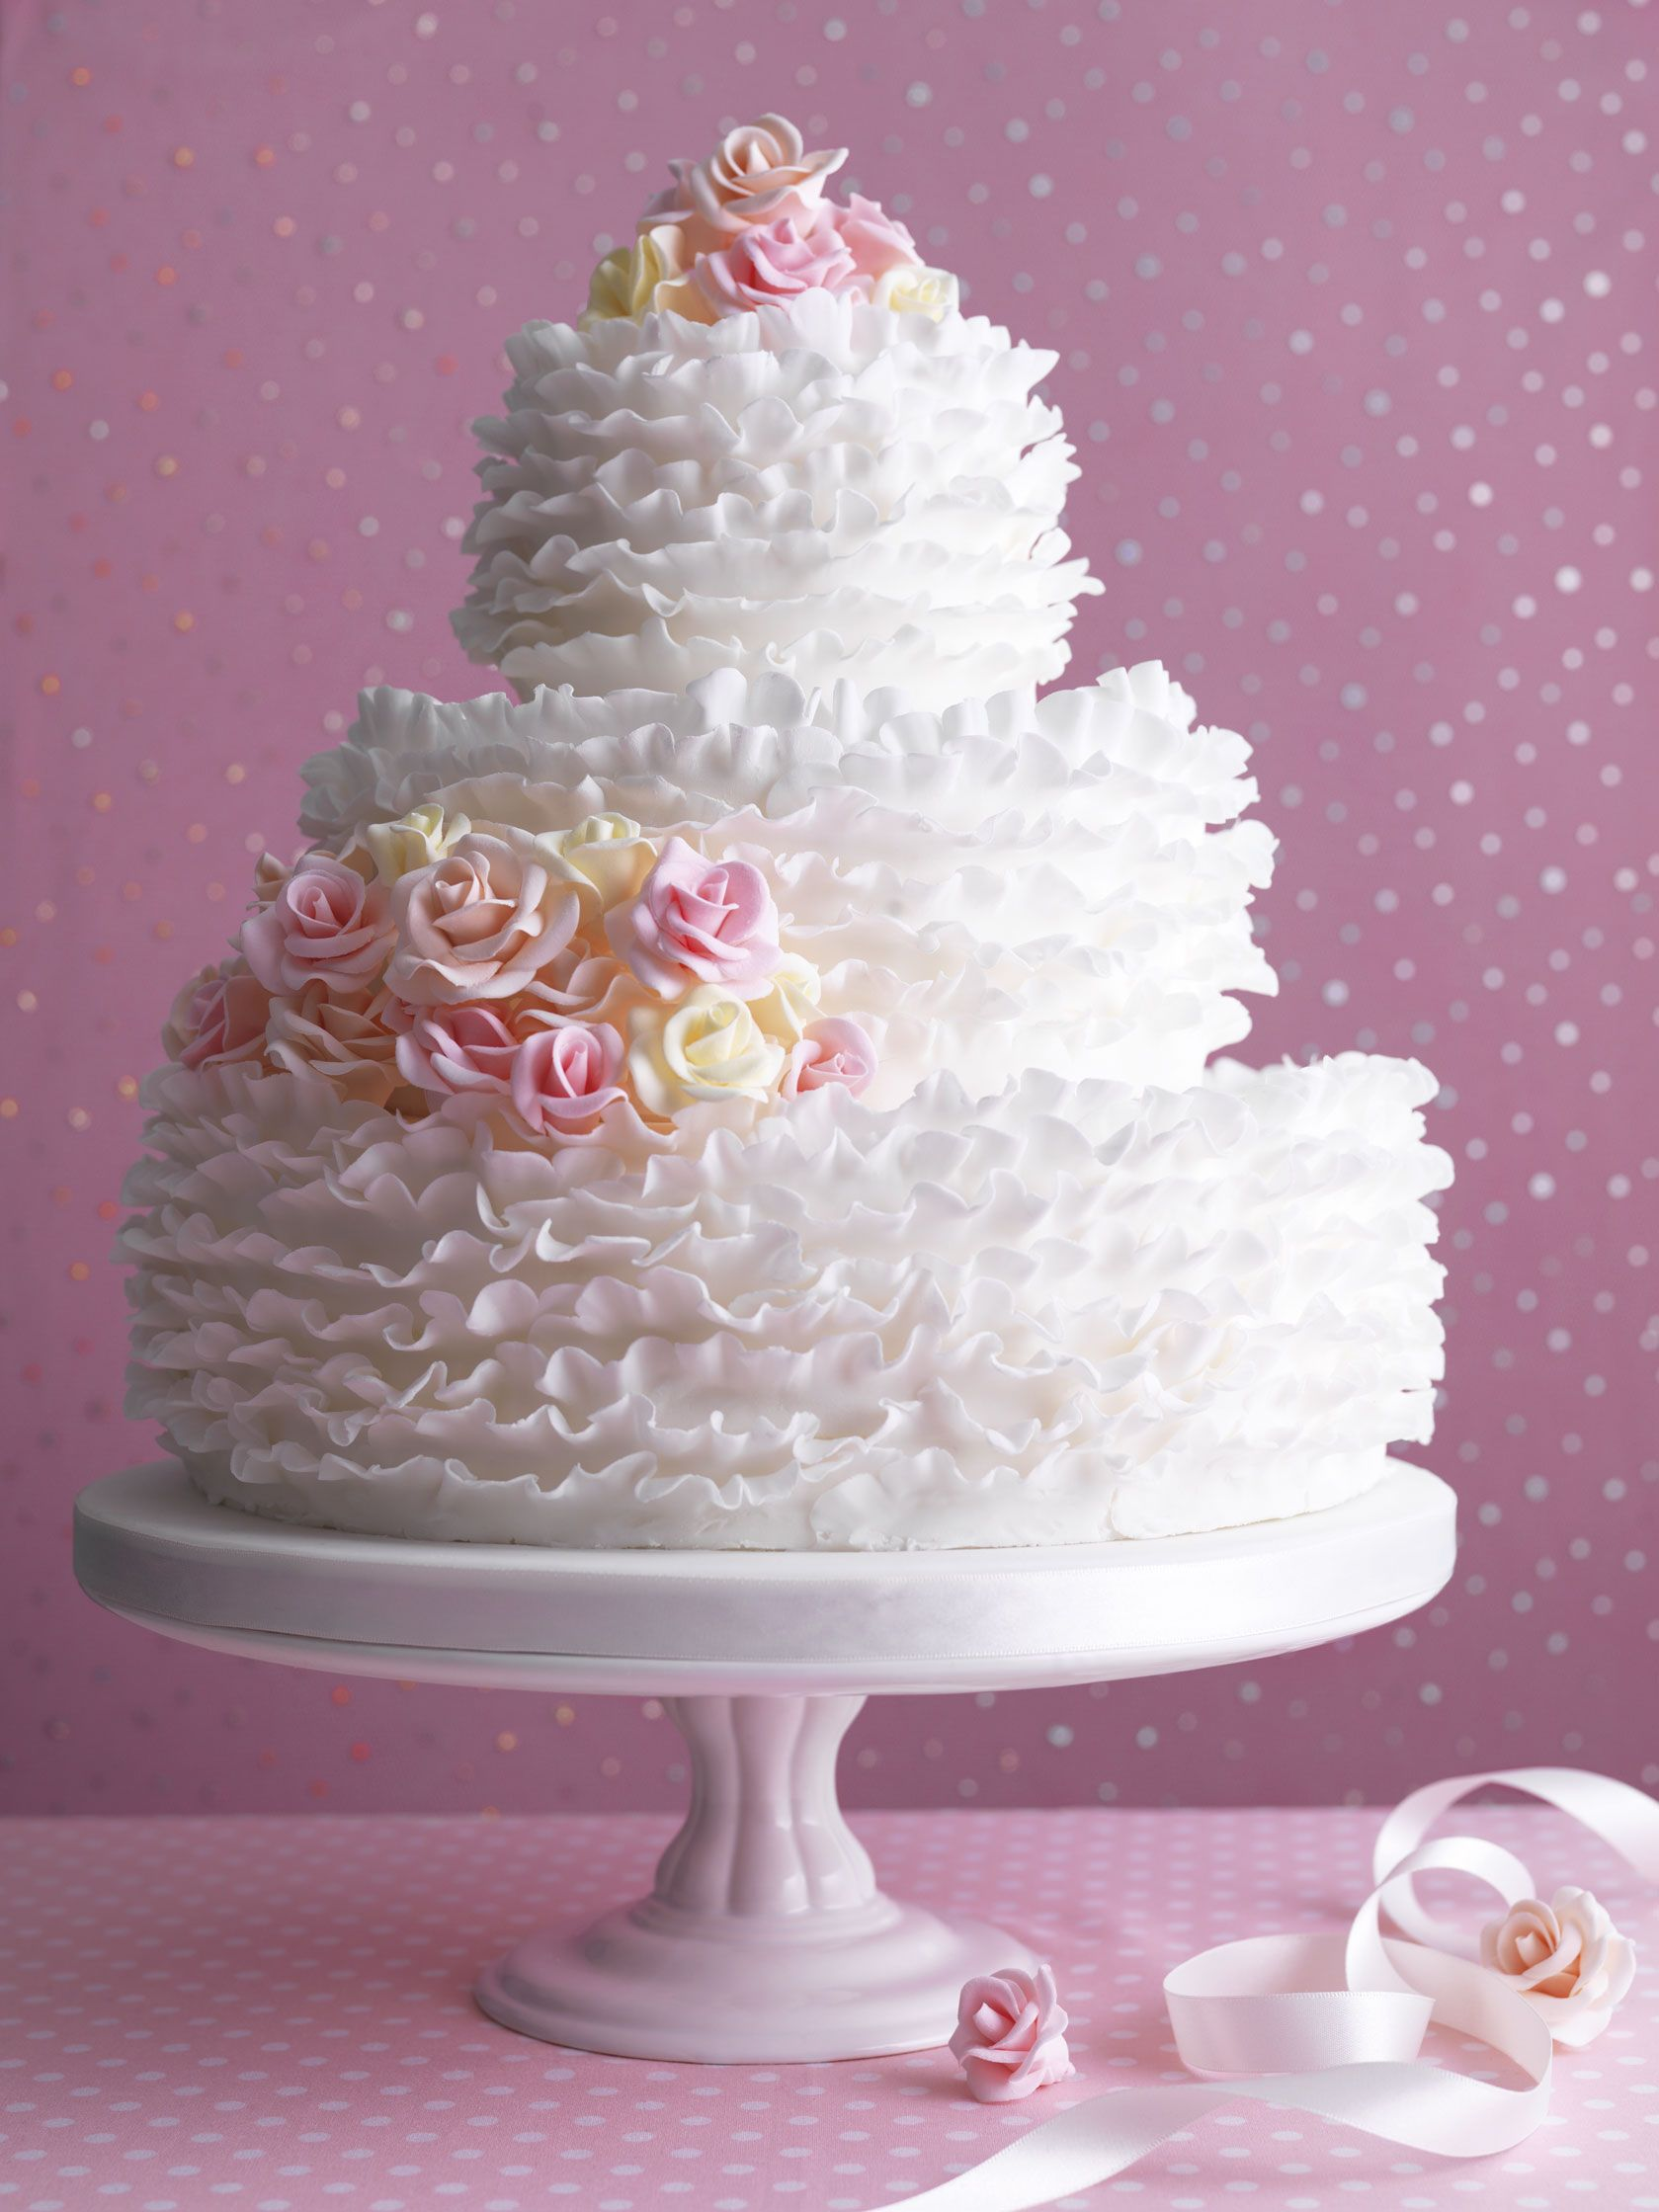 How to make a wedding cake     with recipes for different tin sizes     How to make a wedding cake     with recipes for different tin sizes